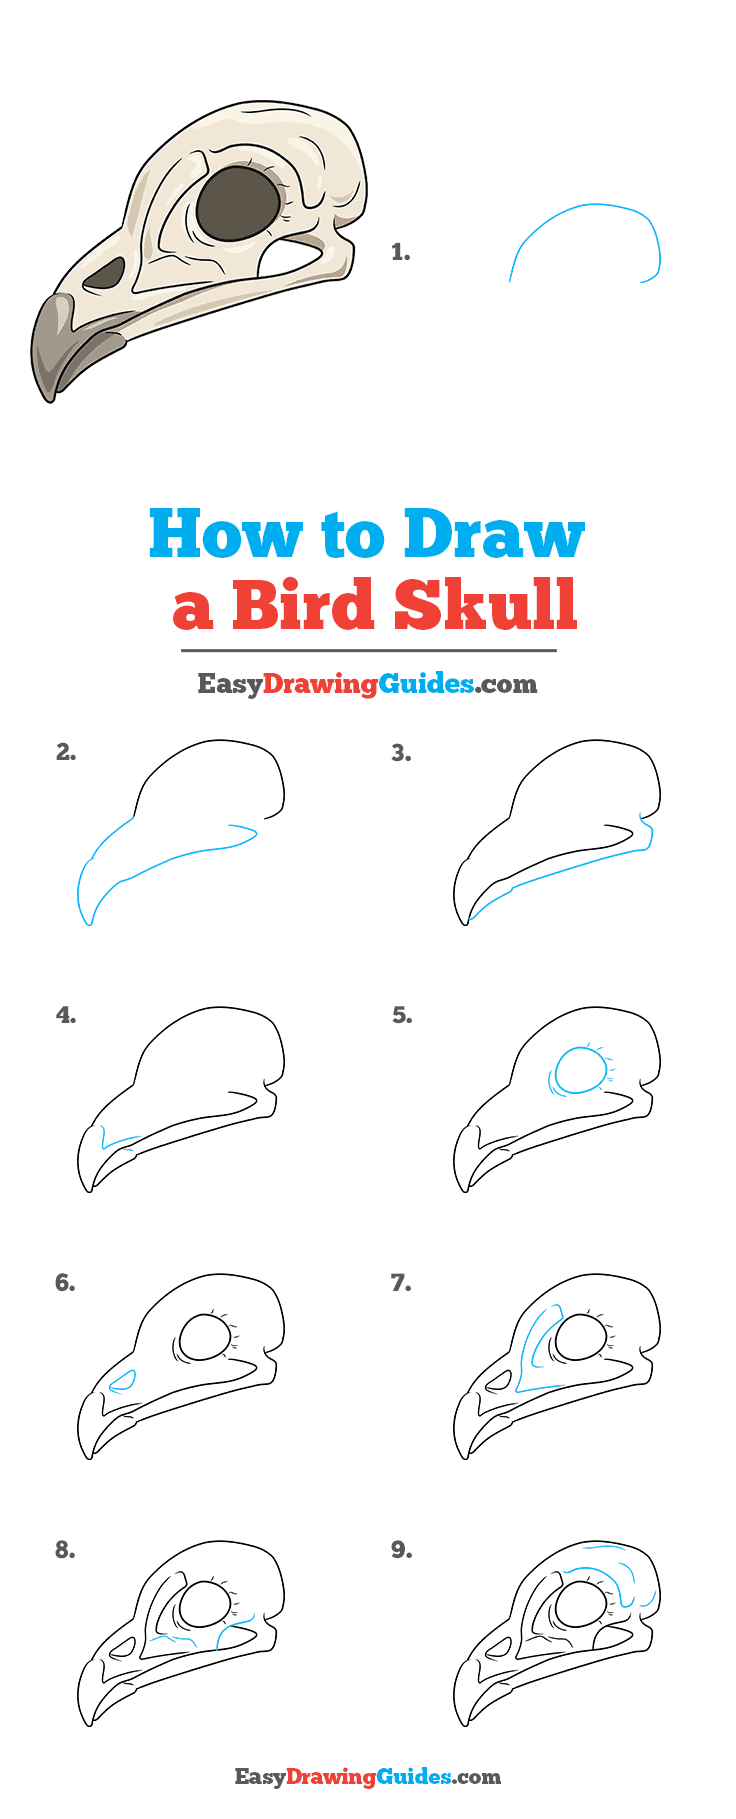 How to Draw a Bird Skull Step by Step Tutorial Image